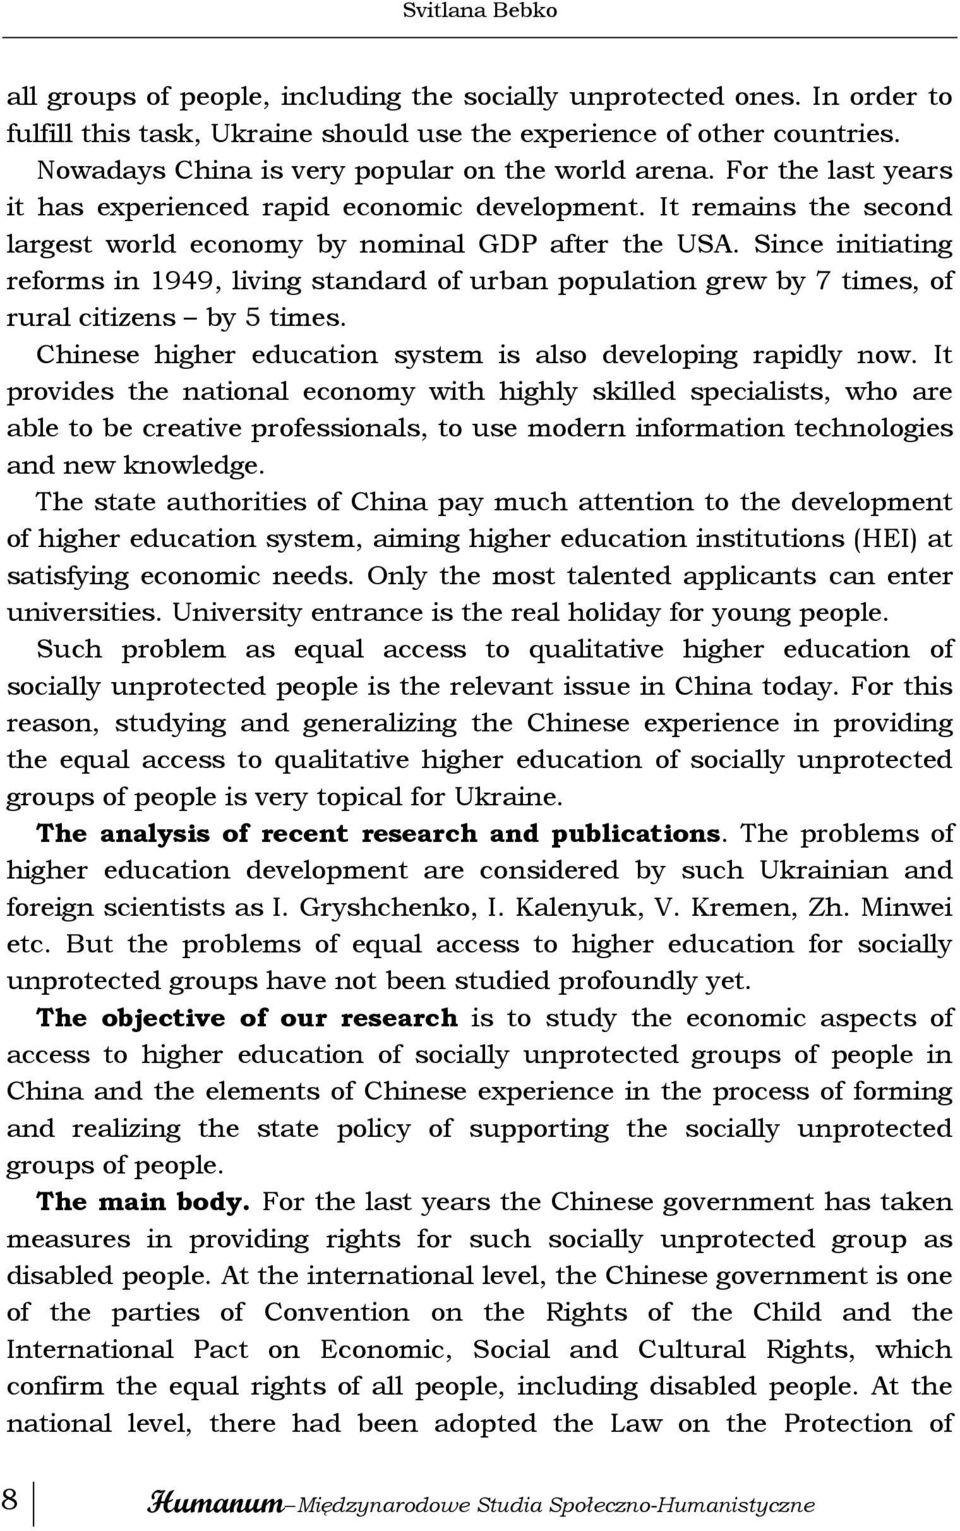 Since initiating reforms in 1949, living standard of urban population grew by 7 times, of rural citizens by 5 times. Chinese higher education system is also developing rapidly now.